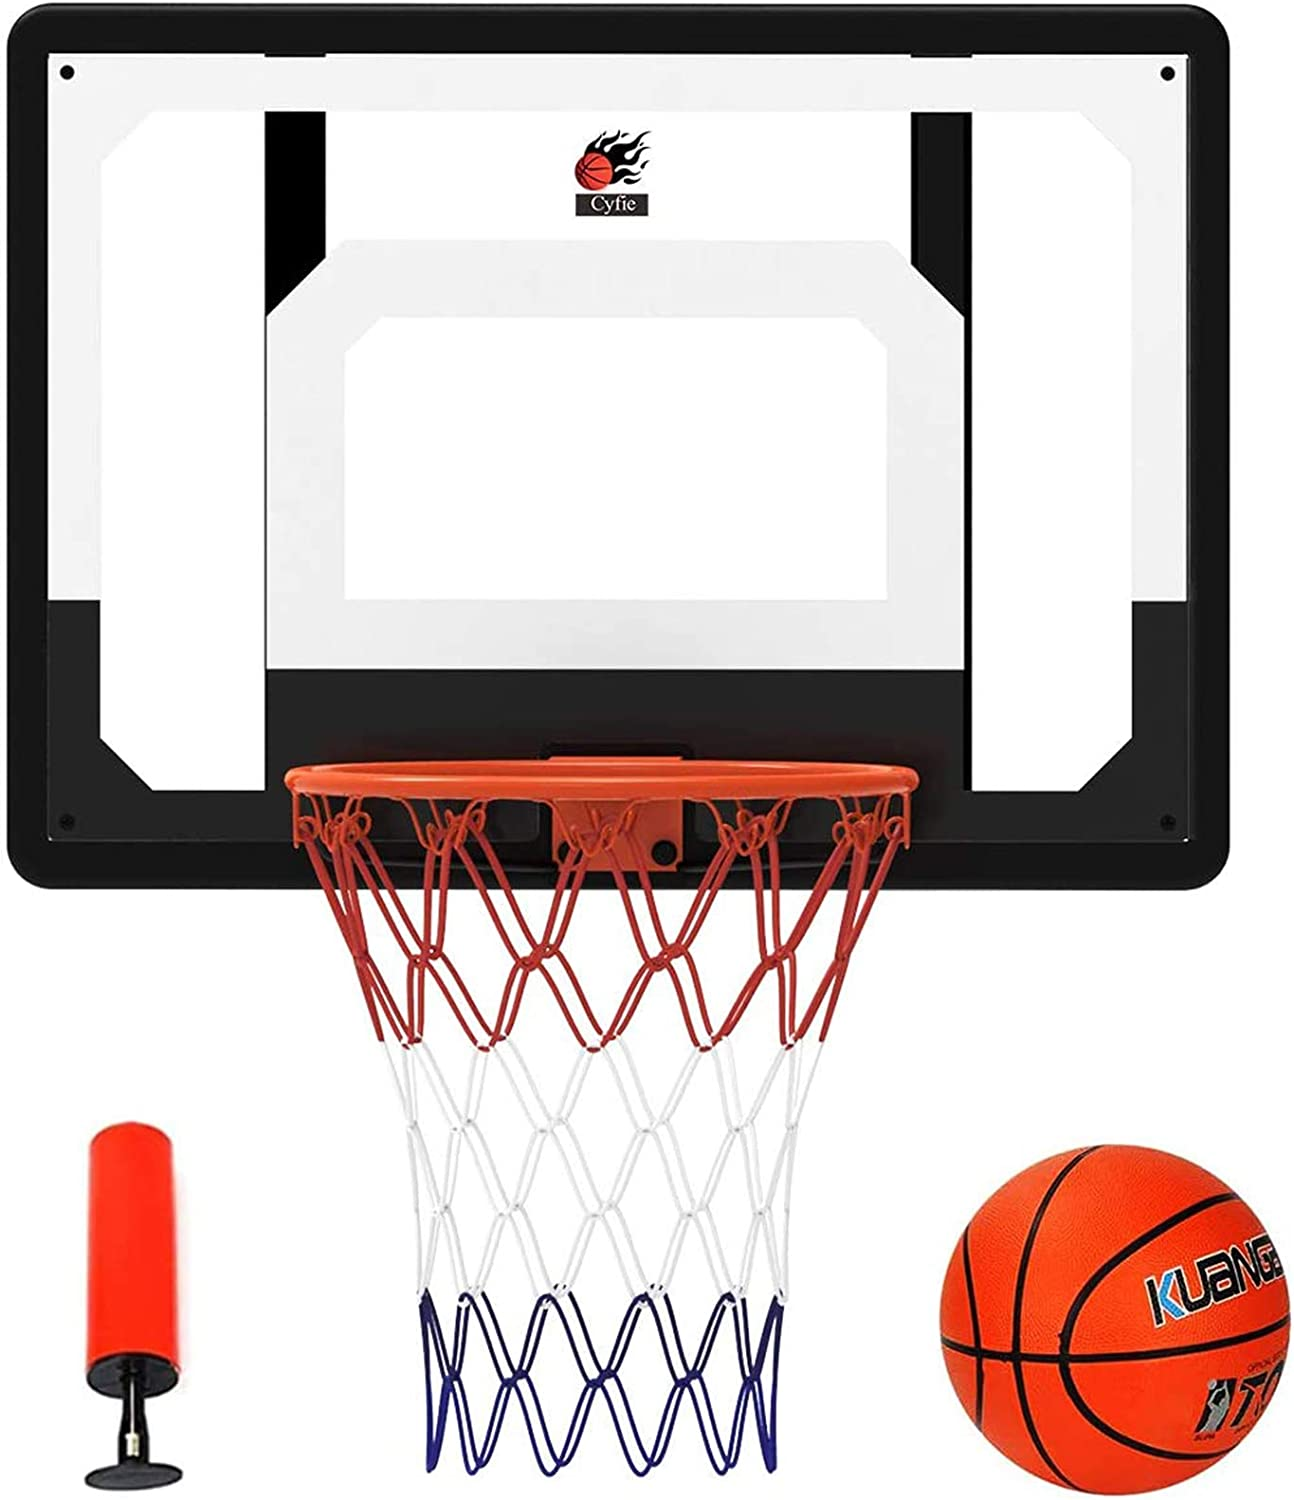 "Cyfie Over-The-Door Basketball Hoop Backboard, 32"" x 23"" Basketball Hoops for Home/Office, Basketball Goals for Kids Adults: Toys & Games"